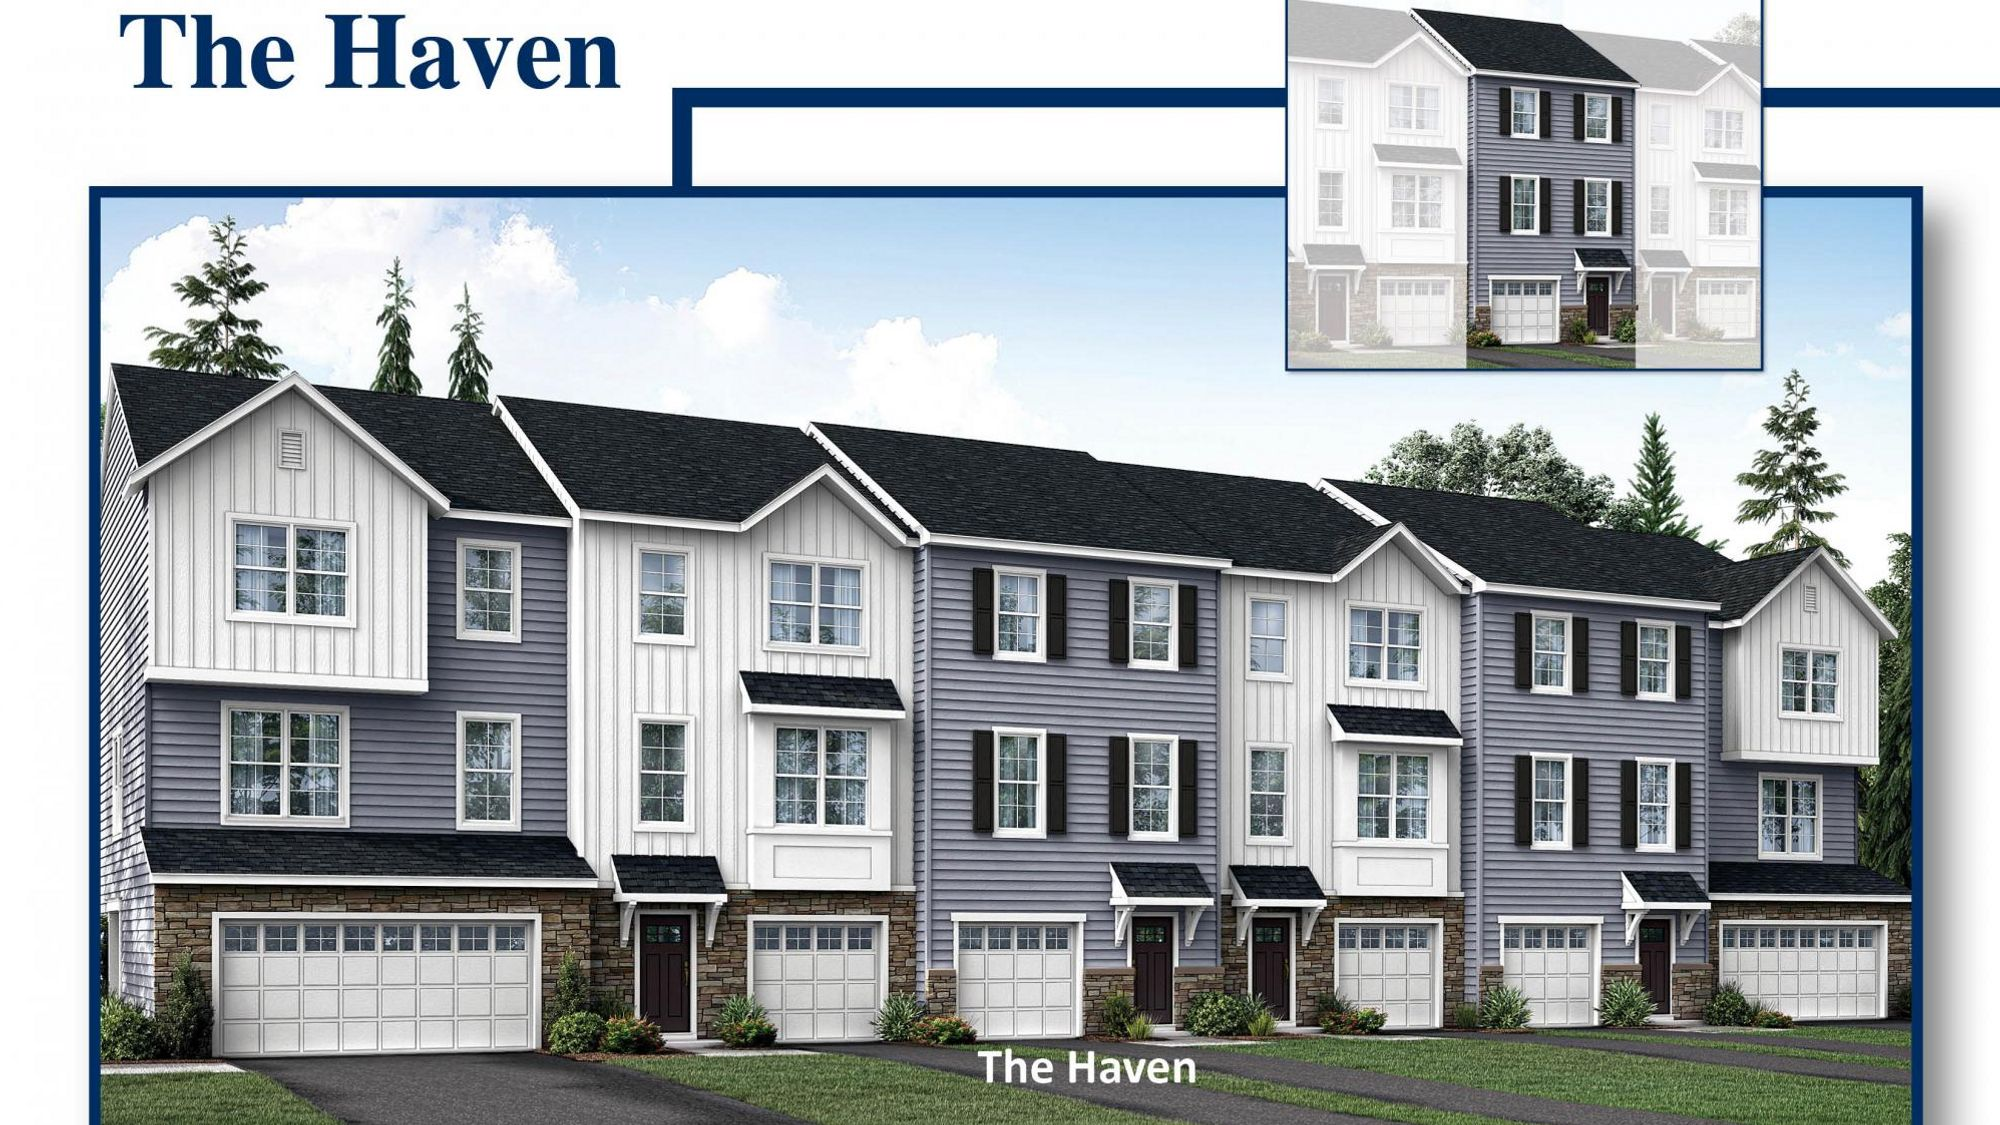 Exterior of the The Haven model new townhome in southern NJ, illustrated with 1 car garage, siding, plus stone facing around front door.